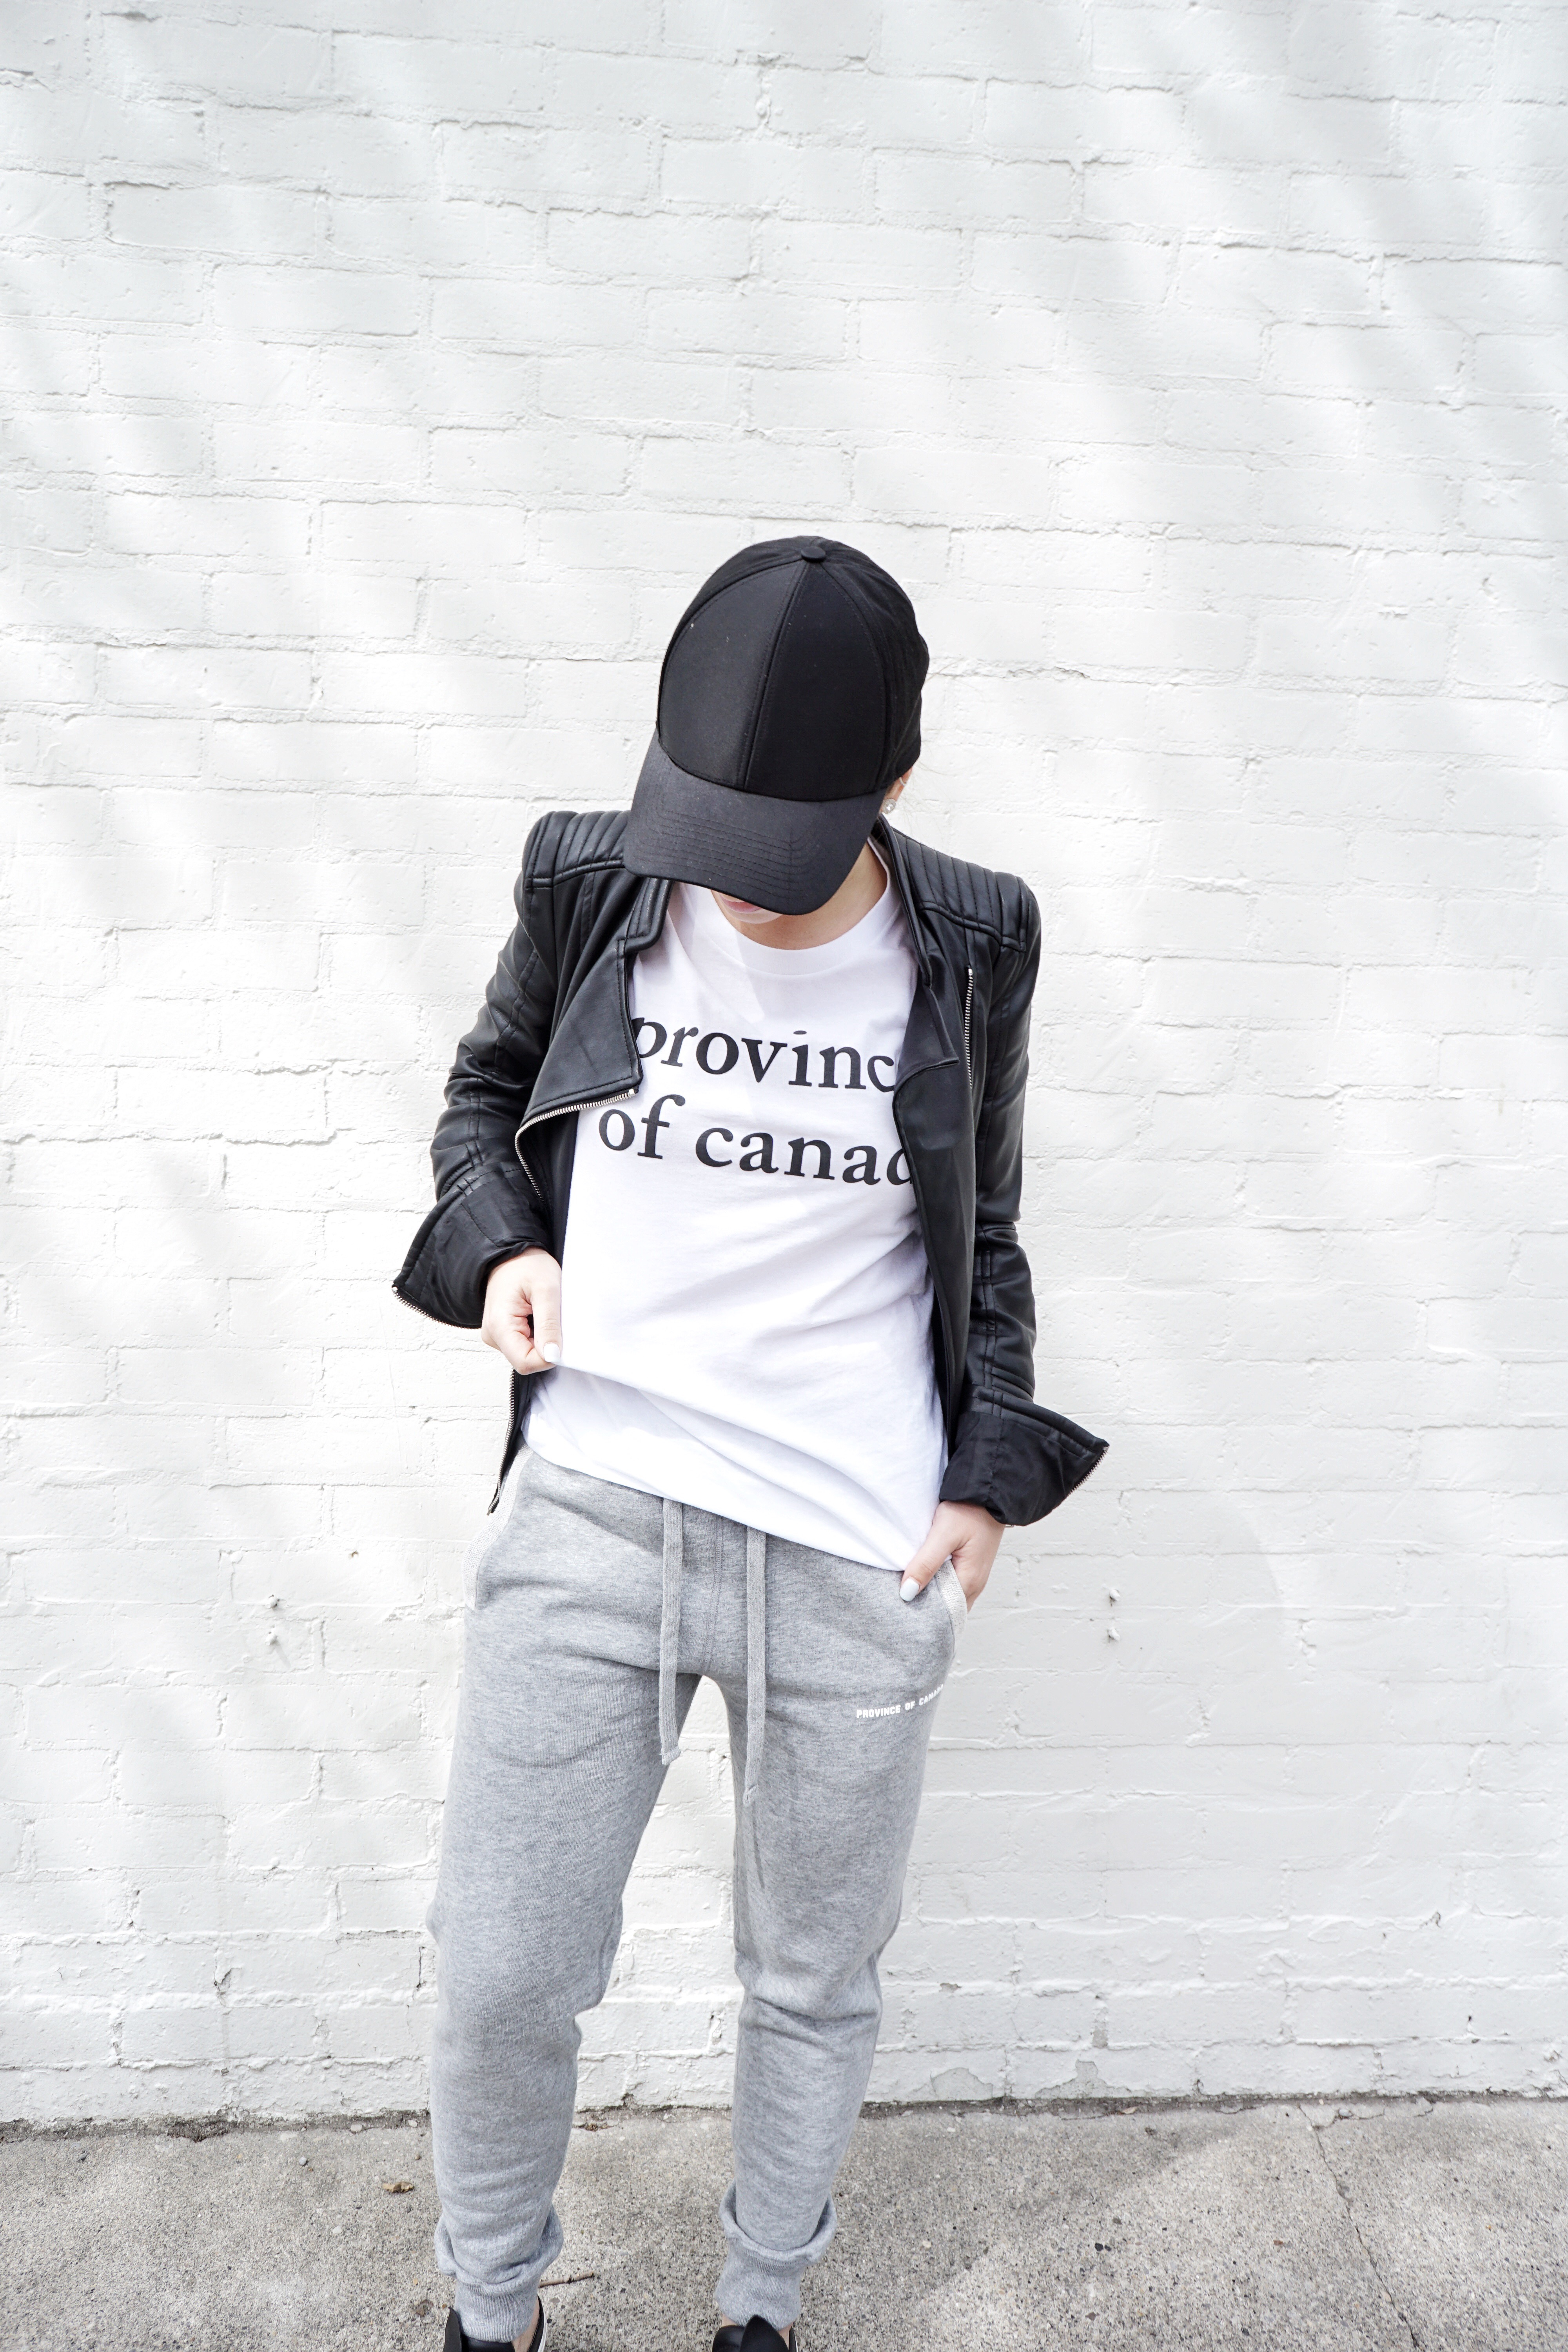 Drea Marie shares a clothing line that she is swooning over; Province of Canada. This Canadian made brand is well made and trendy. PERFECT.